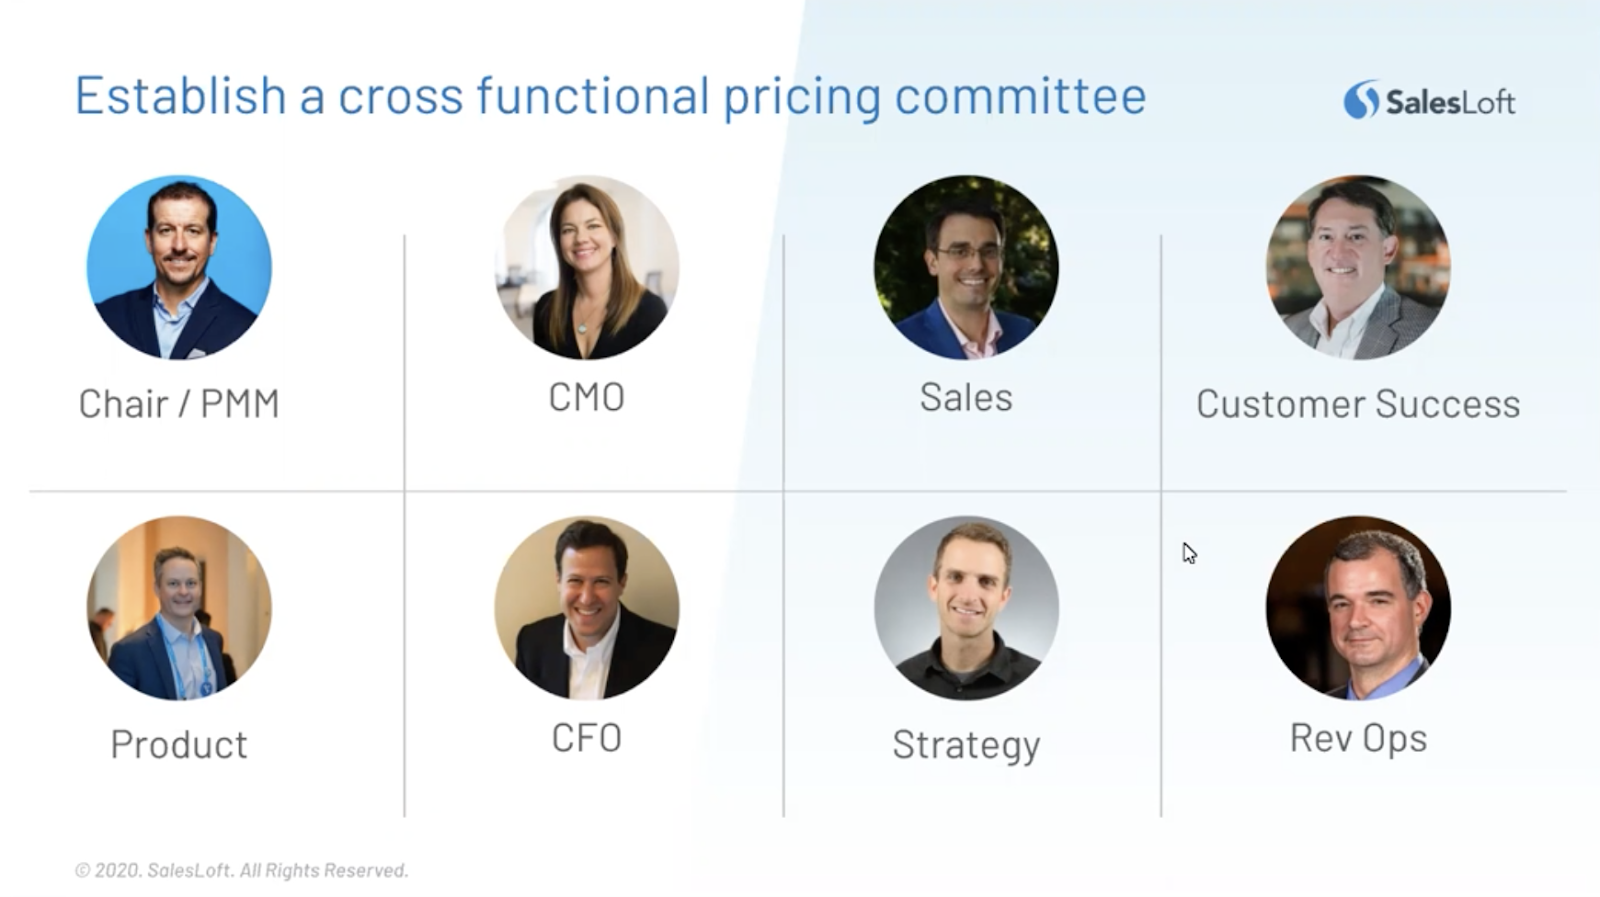 Establish a cross functional pricing committee.